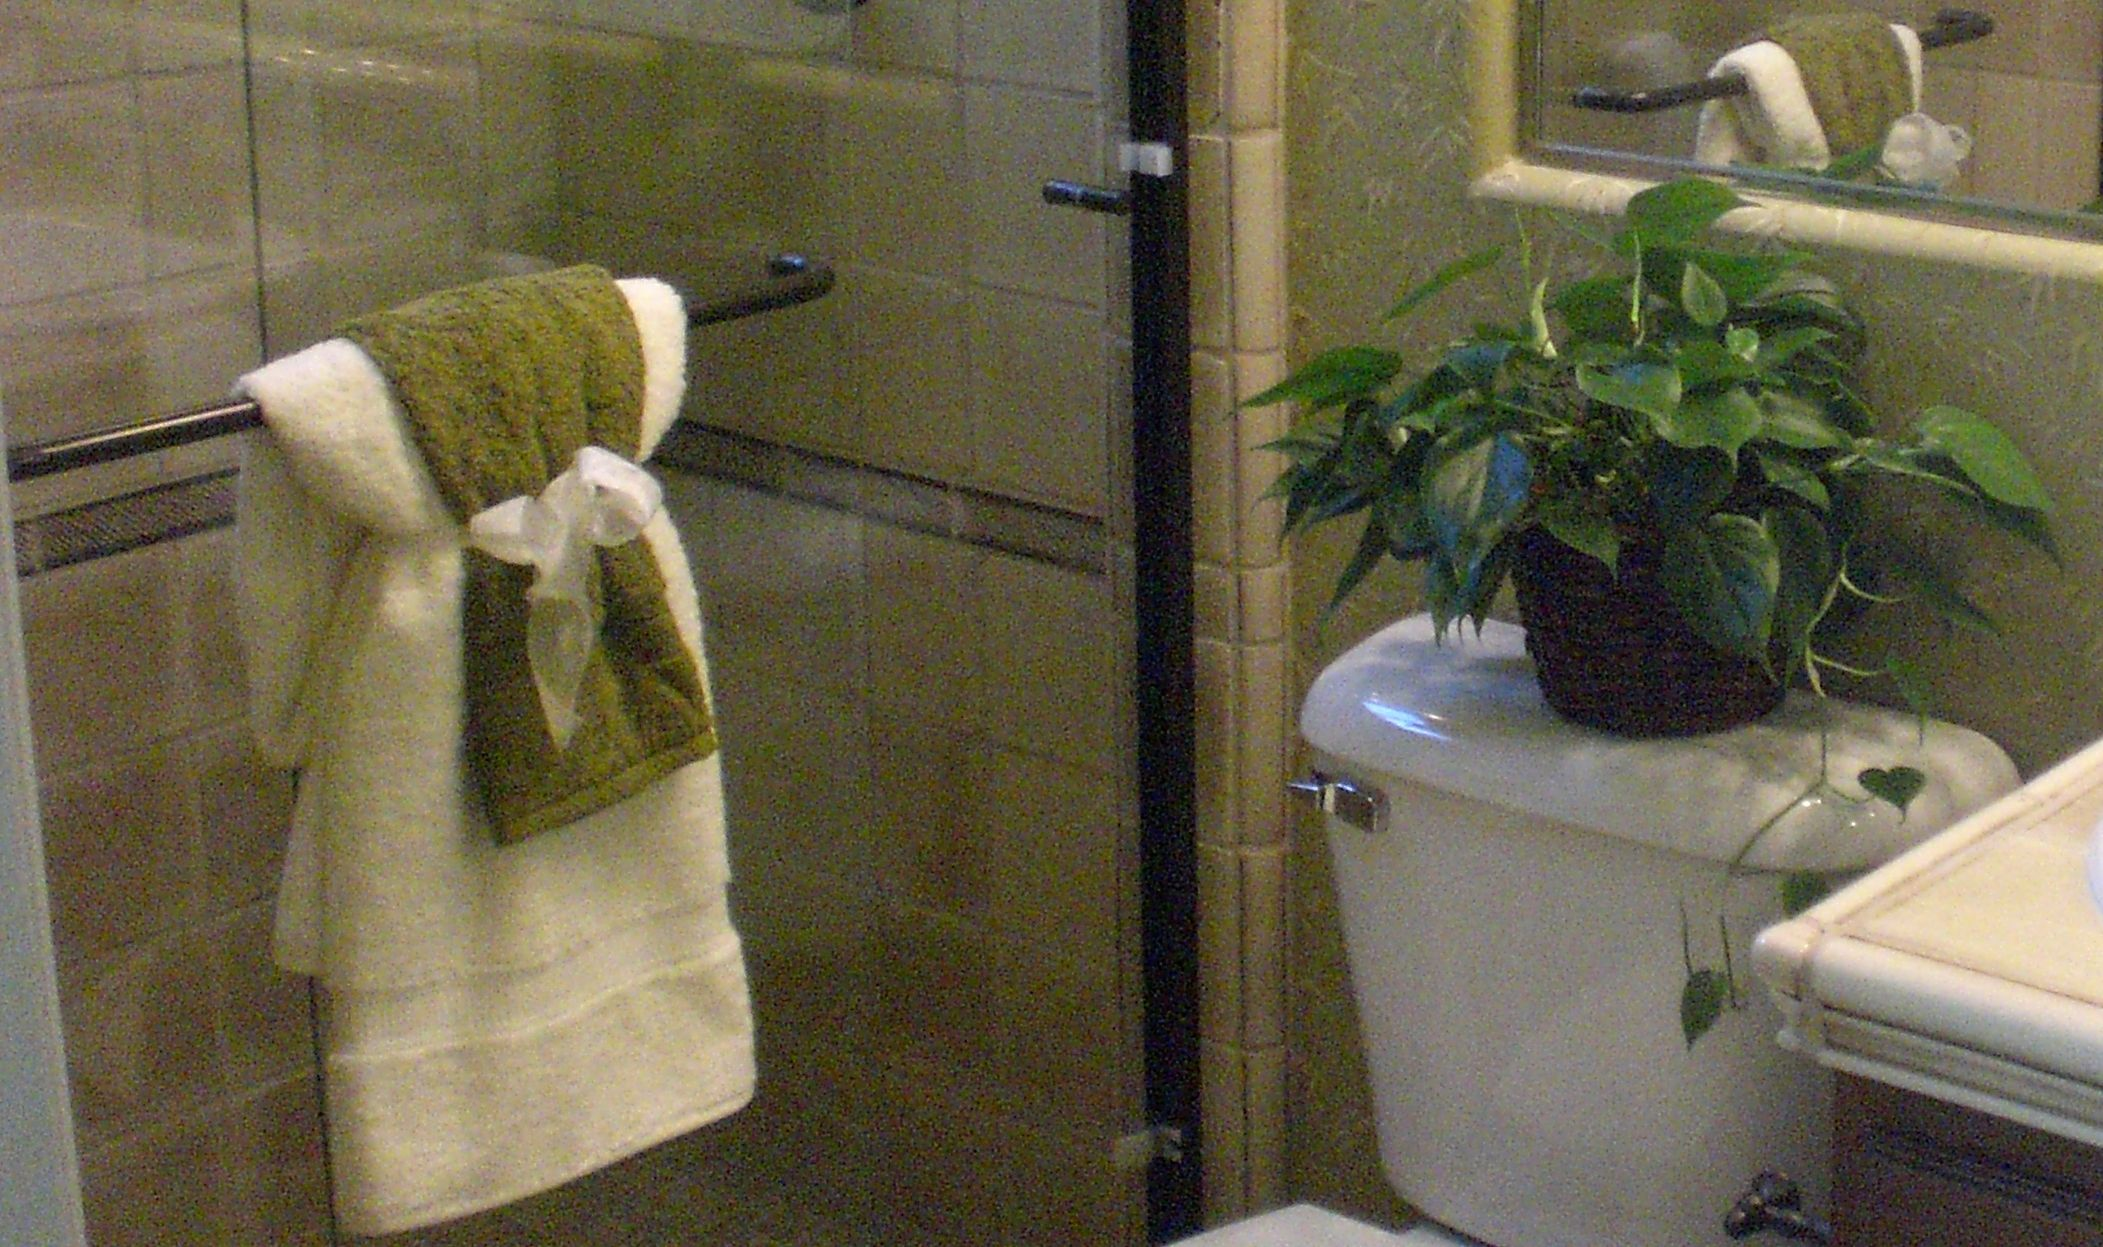 Towel Decorations Everyday Items Towels And Bathroom - Cheap decorative towels for small bathroom ideas